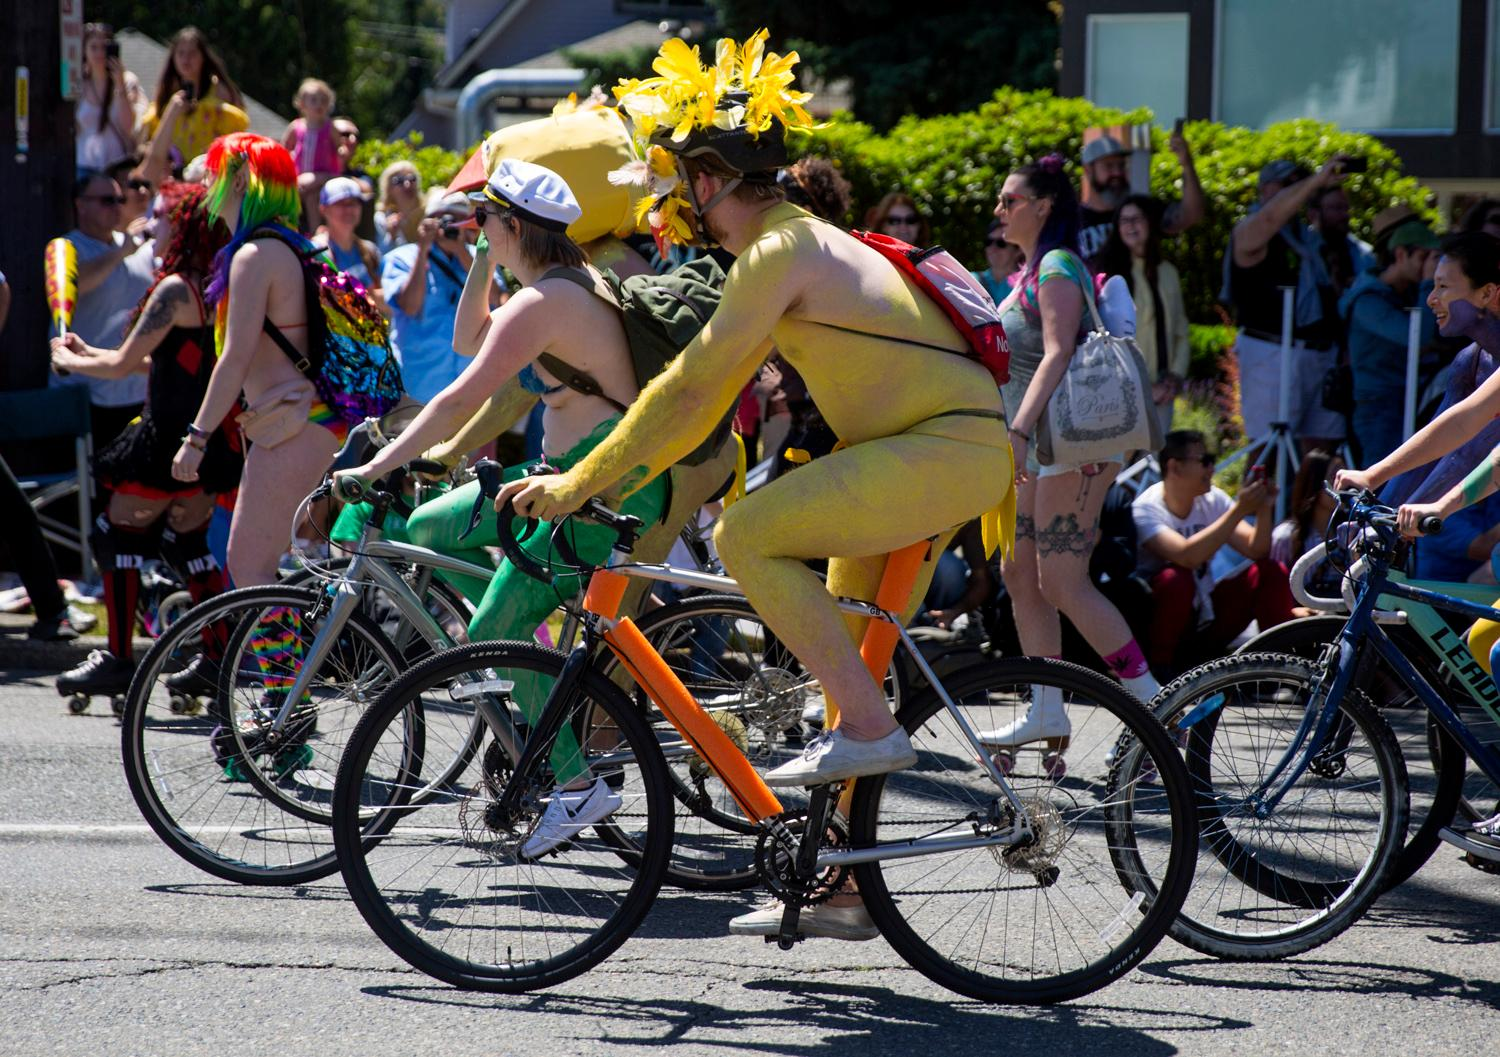 Thousands come down to the Fremont Solstice Fair for the annual Fremont Solstice Parade. Hundreds of bike riders get naked and unofficially kick off the Fremont Solstice Parade, painting their body in all types of colorful ways. Once the naked bike riders roll through musicians, dancers, clowns and lots of other quirky characters take to the parade route.